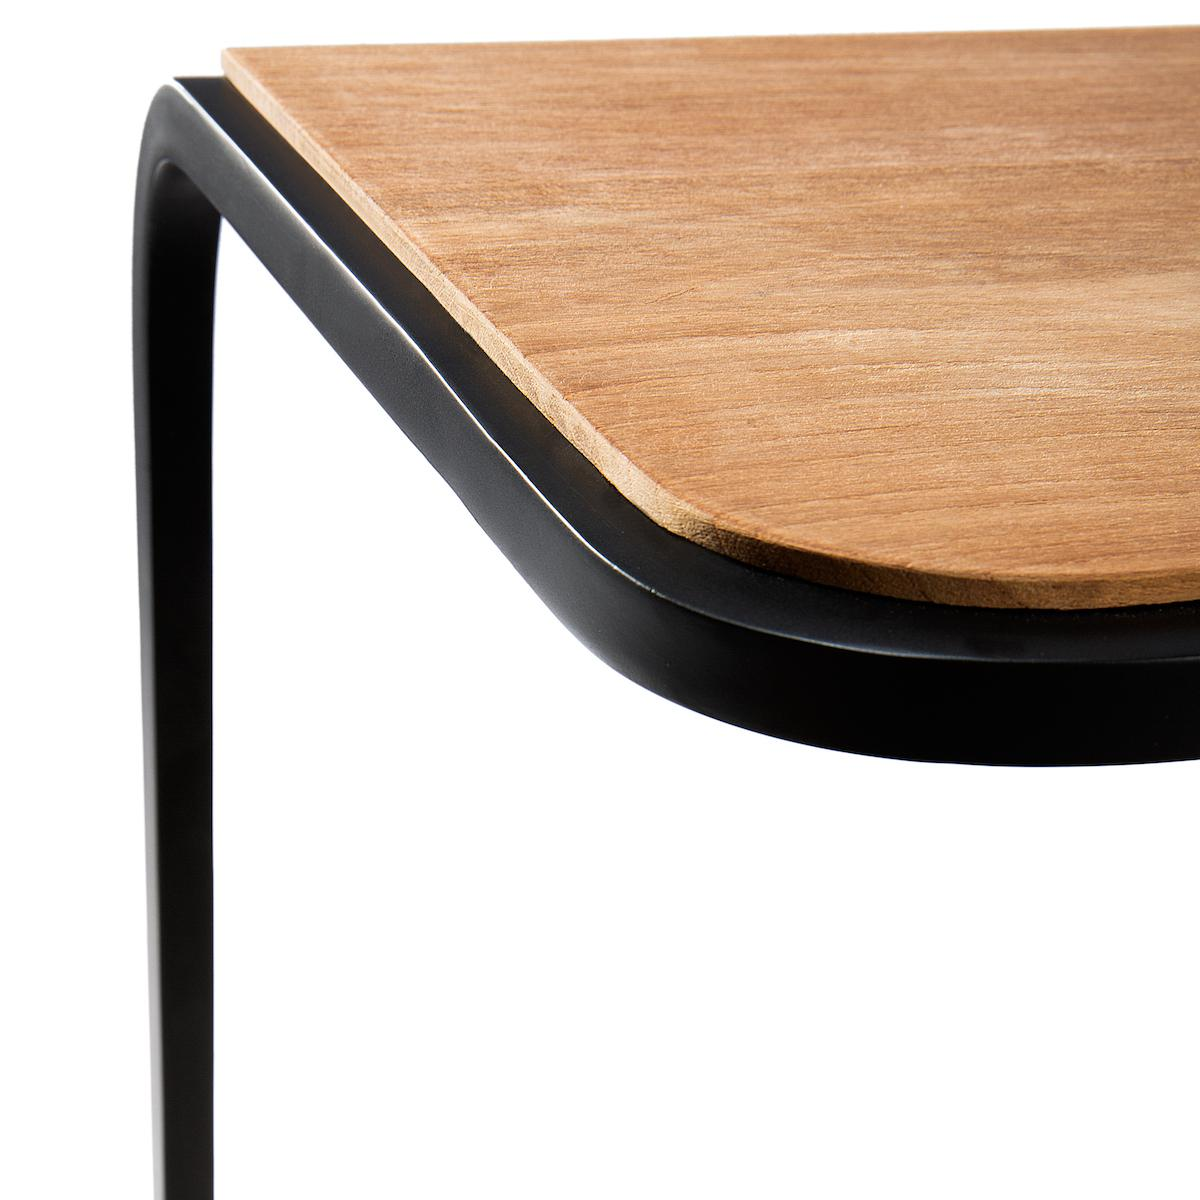 Table d'appoint 40x40cm N701 Ethnicraft teck